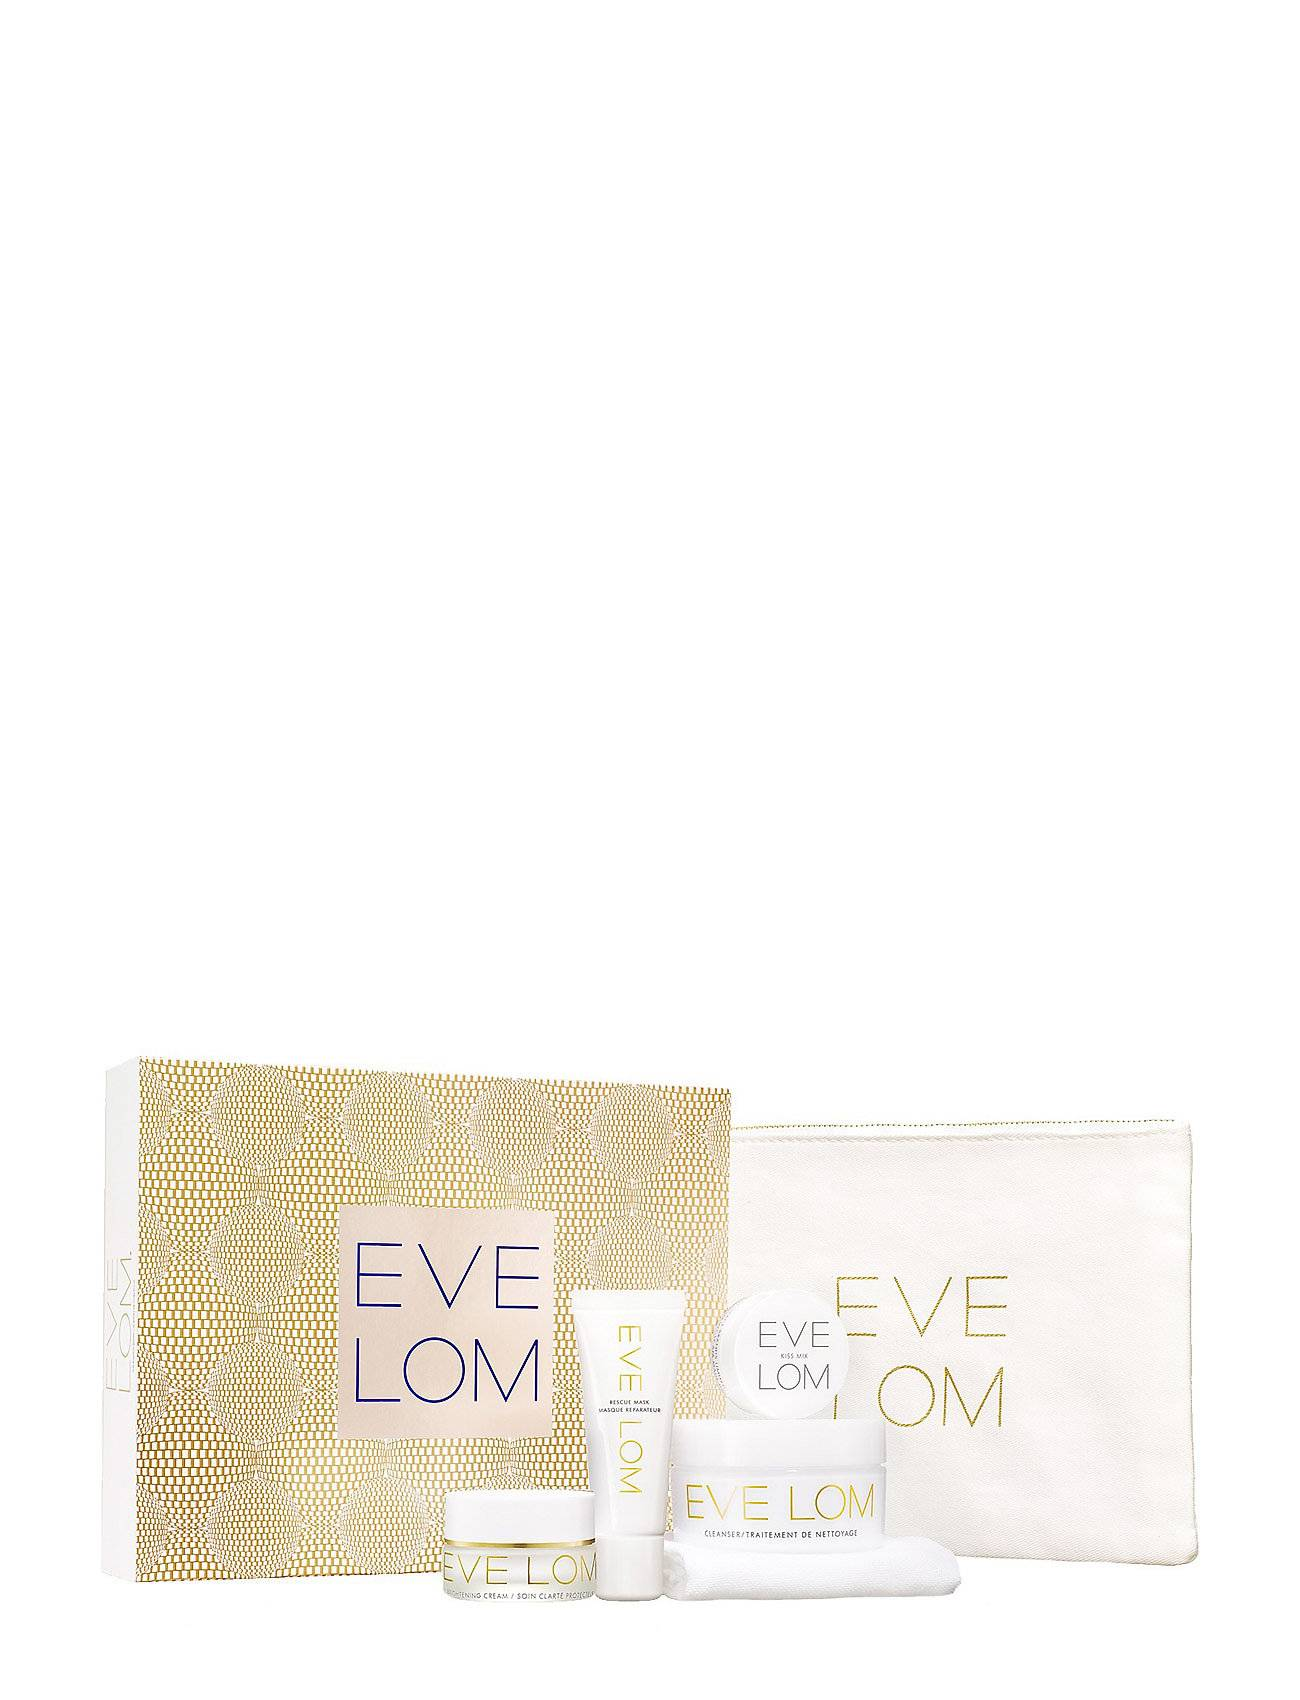 EVE LOM Radiant Rituals Set